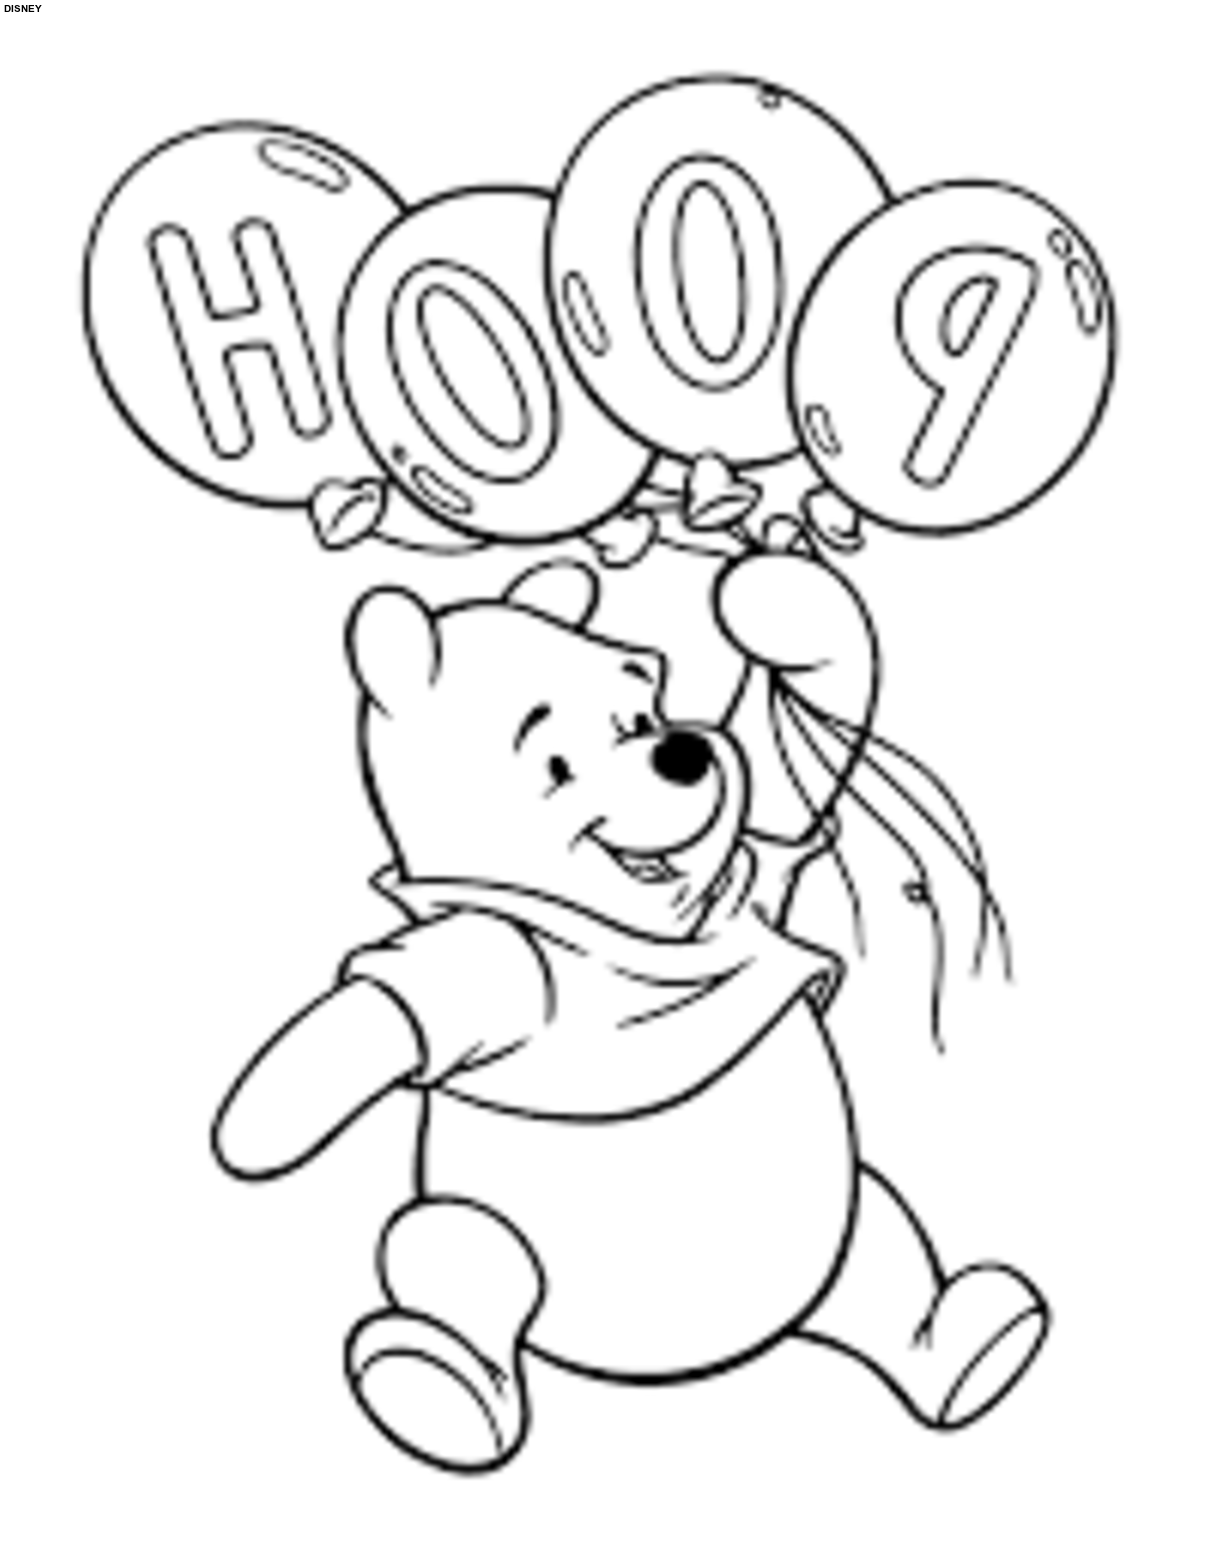 colouring pages of cartoon characters printable nickelodeon coloring pages for kids cool2bkids pages cartoon characters colouring of